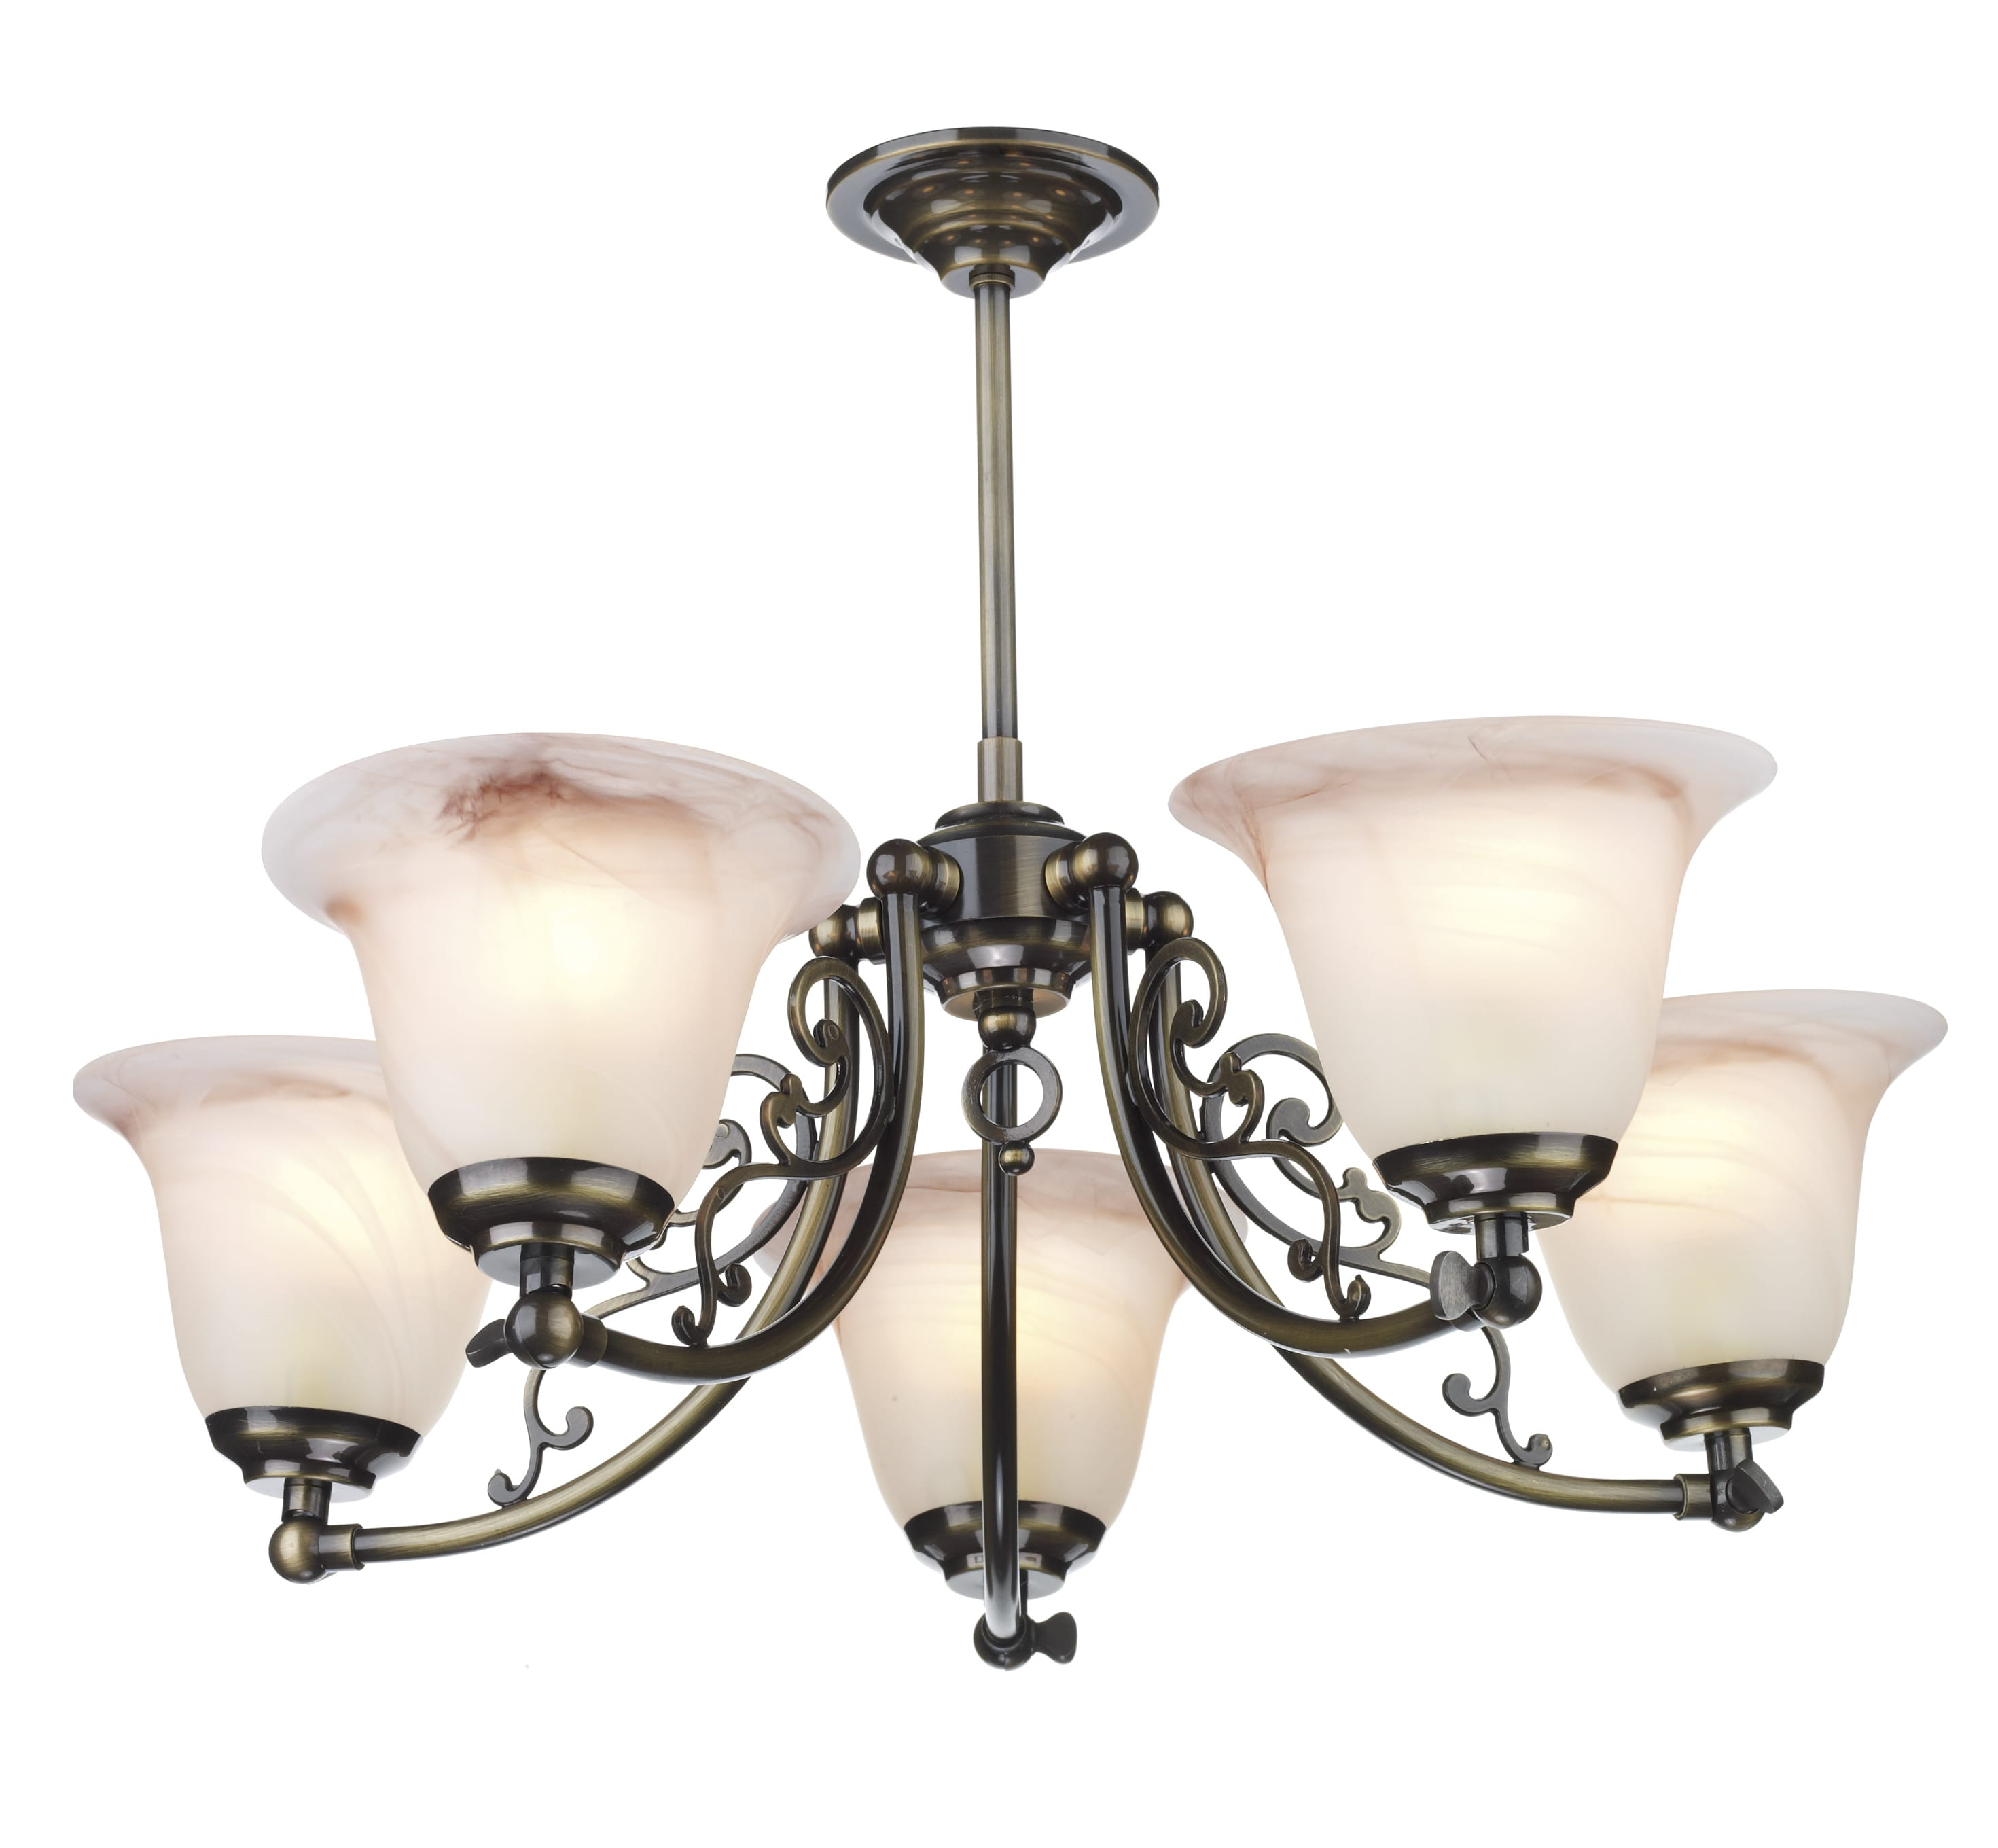 edwardian bathroom lighting lighting uk made buy from the lighting 12765